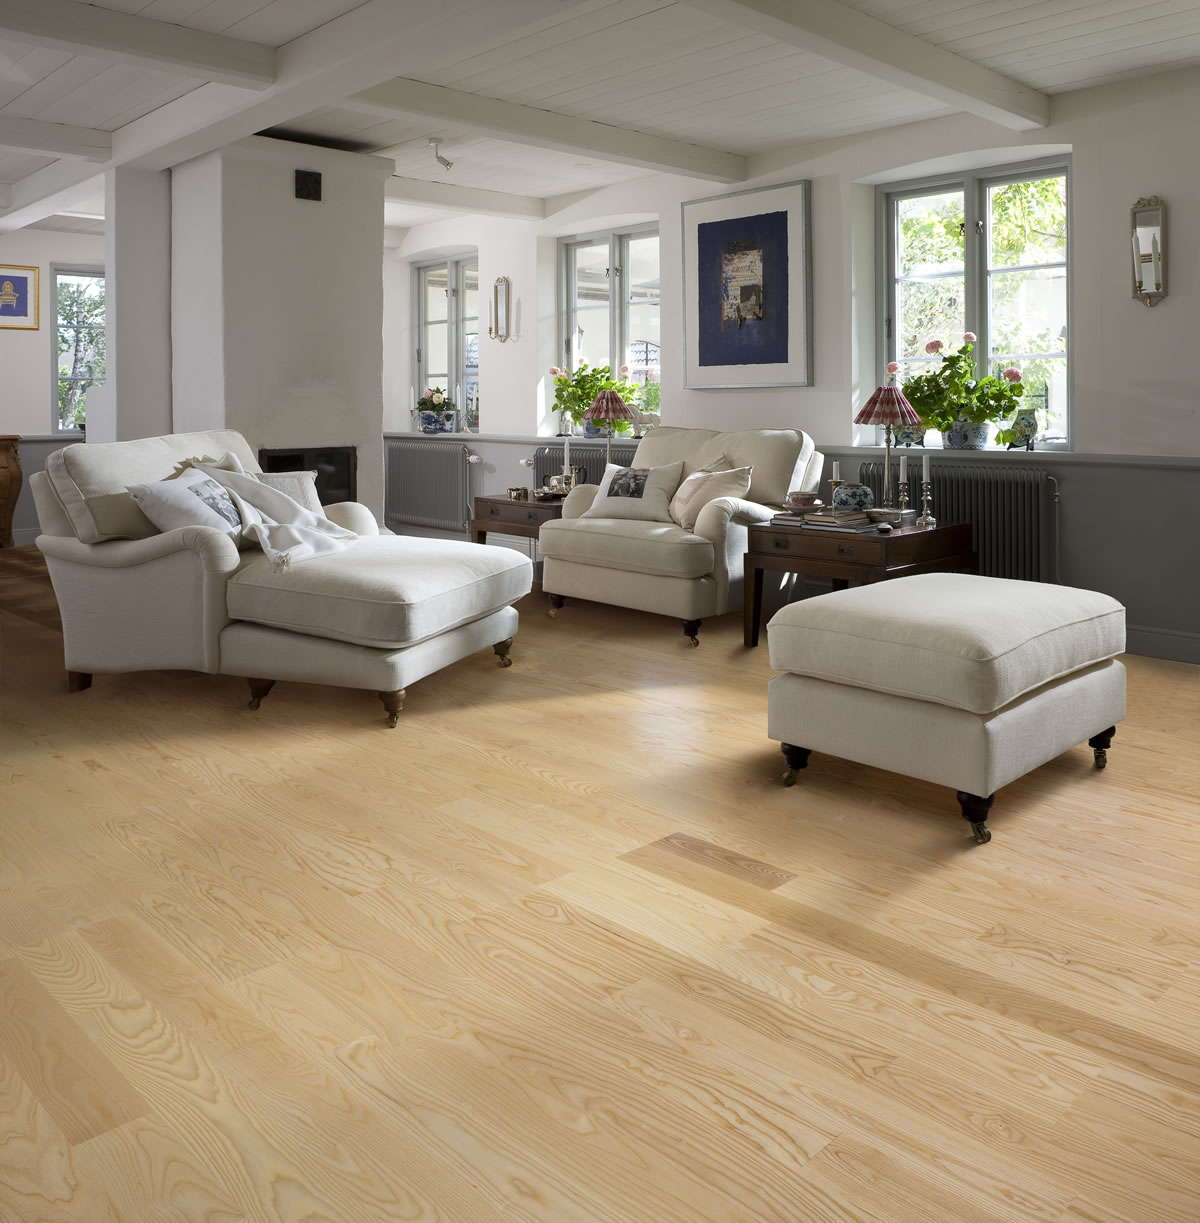 Kahrs ash gothenburg engineered wood flooring for Kahrs flooring